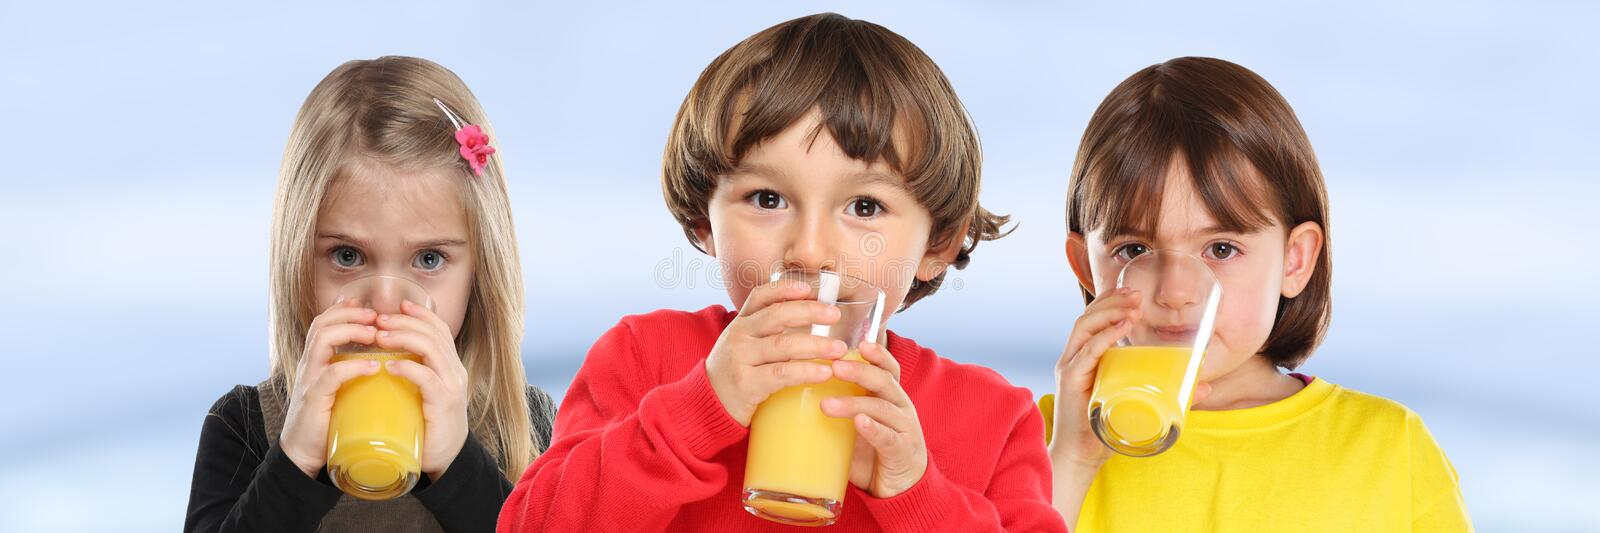 Group of children girl boy kids drinking orange juice healthy eating banner royalty free stock photos